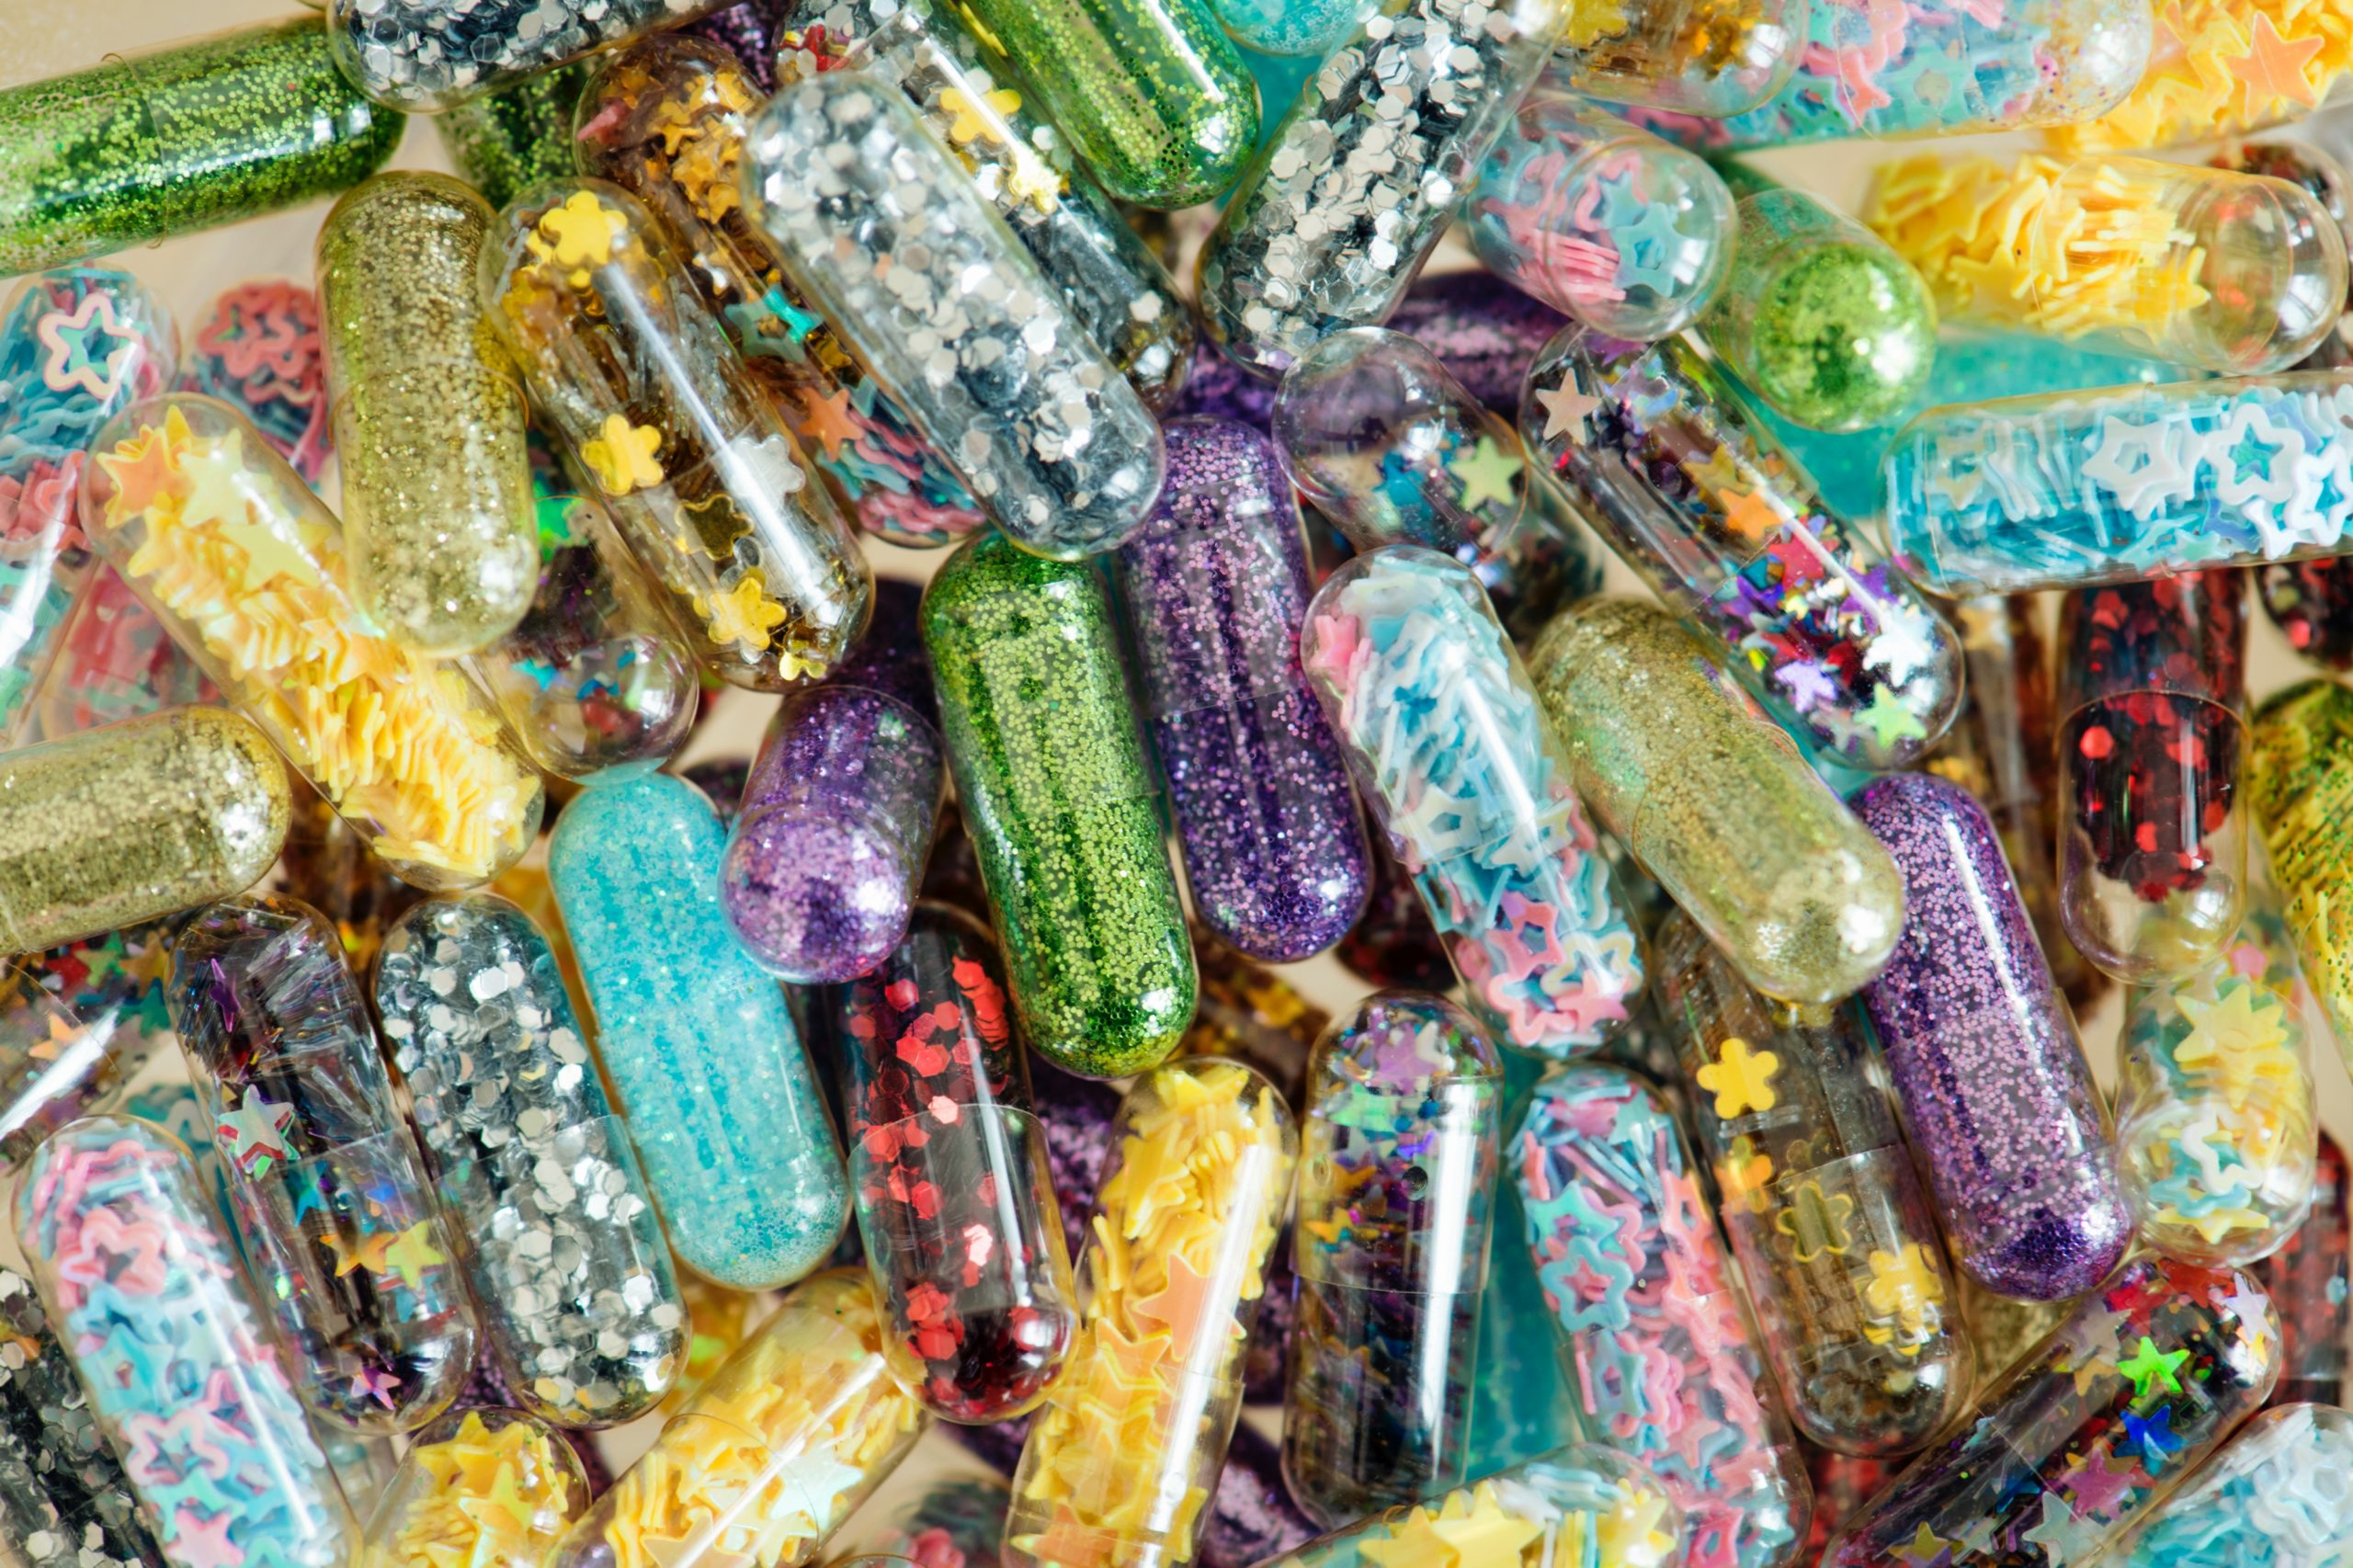 A pile of clear gelatin capsules filled with many different types of glitter: multicolored stars, tiny sparkles, little circles, flowers etc.